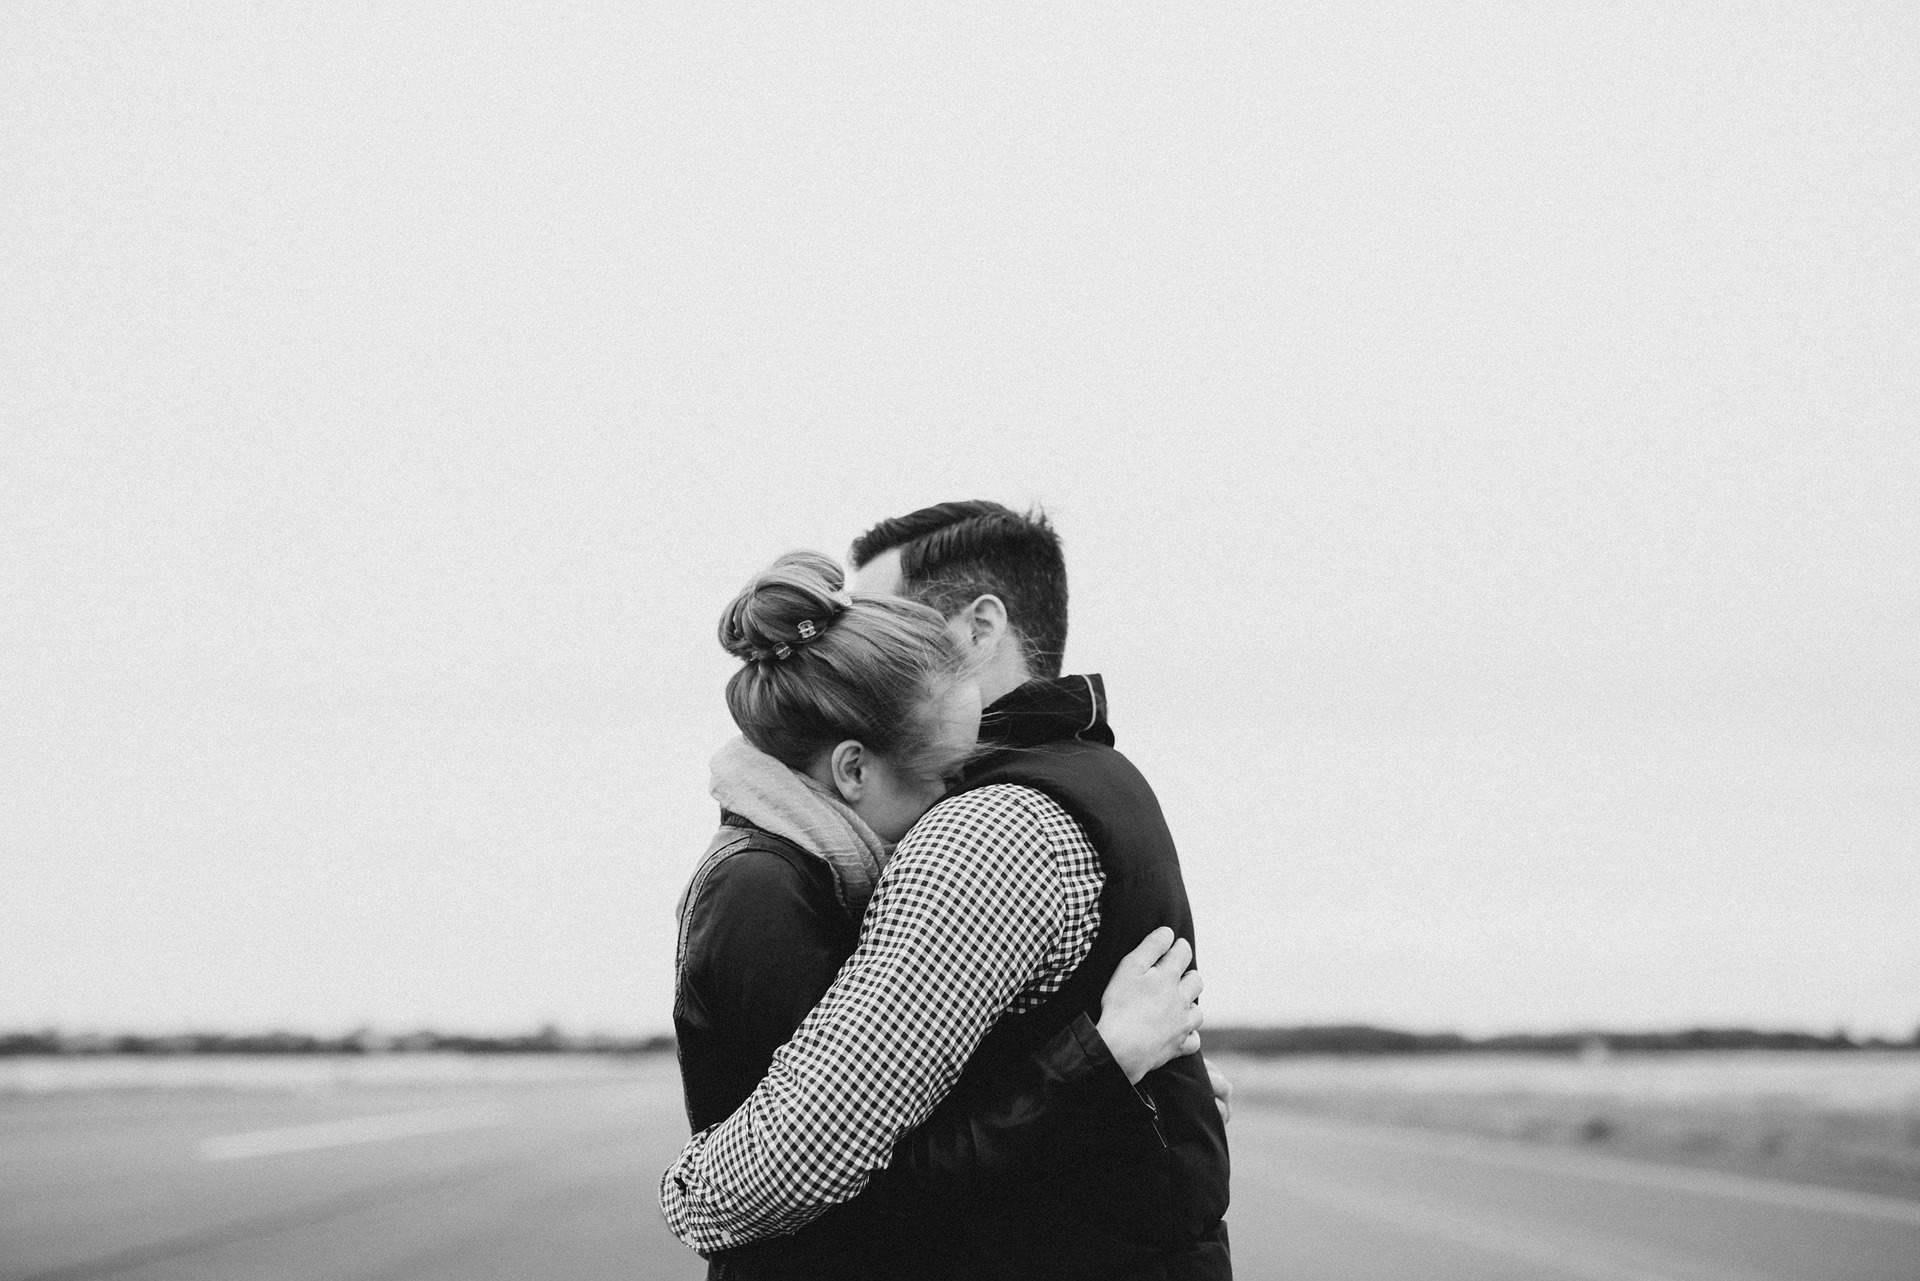 Cuddle Hormone: The Health Benefits of Hugging